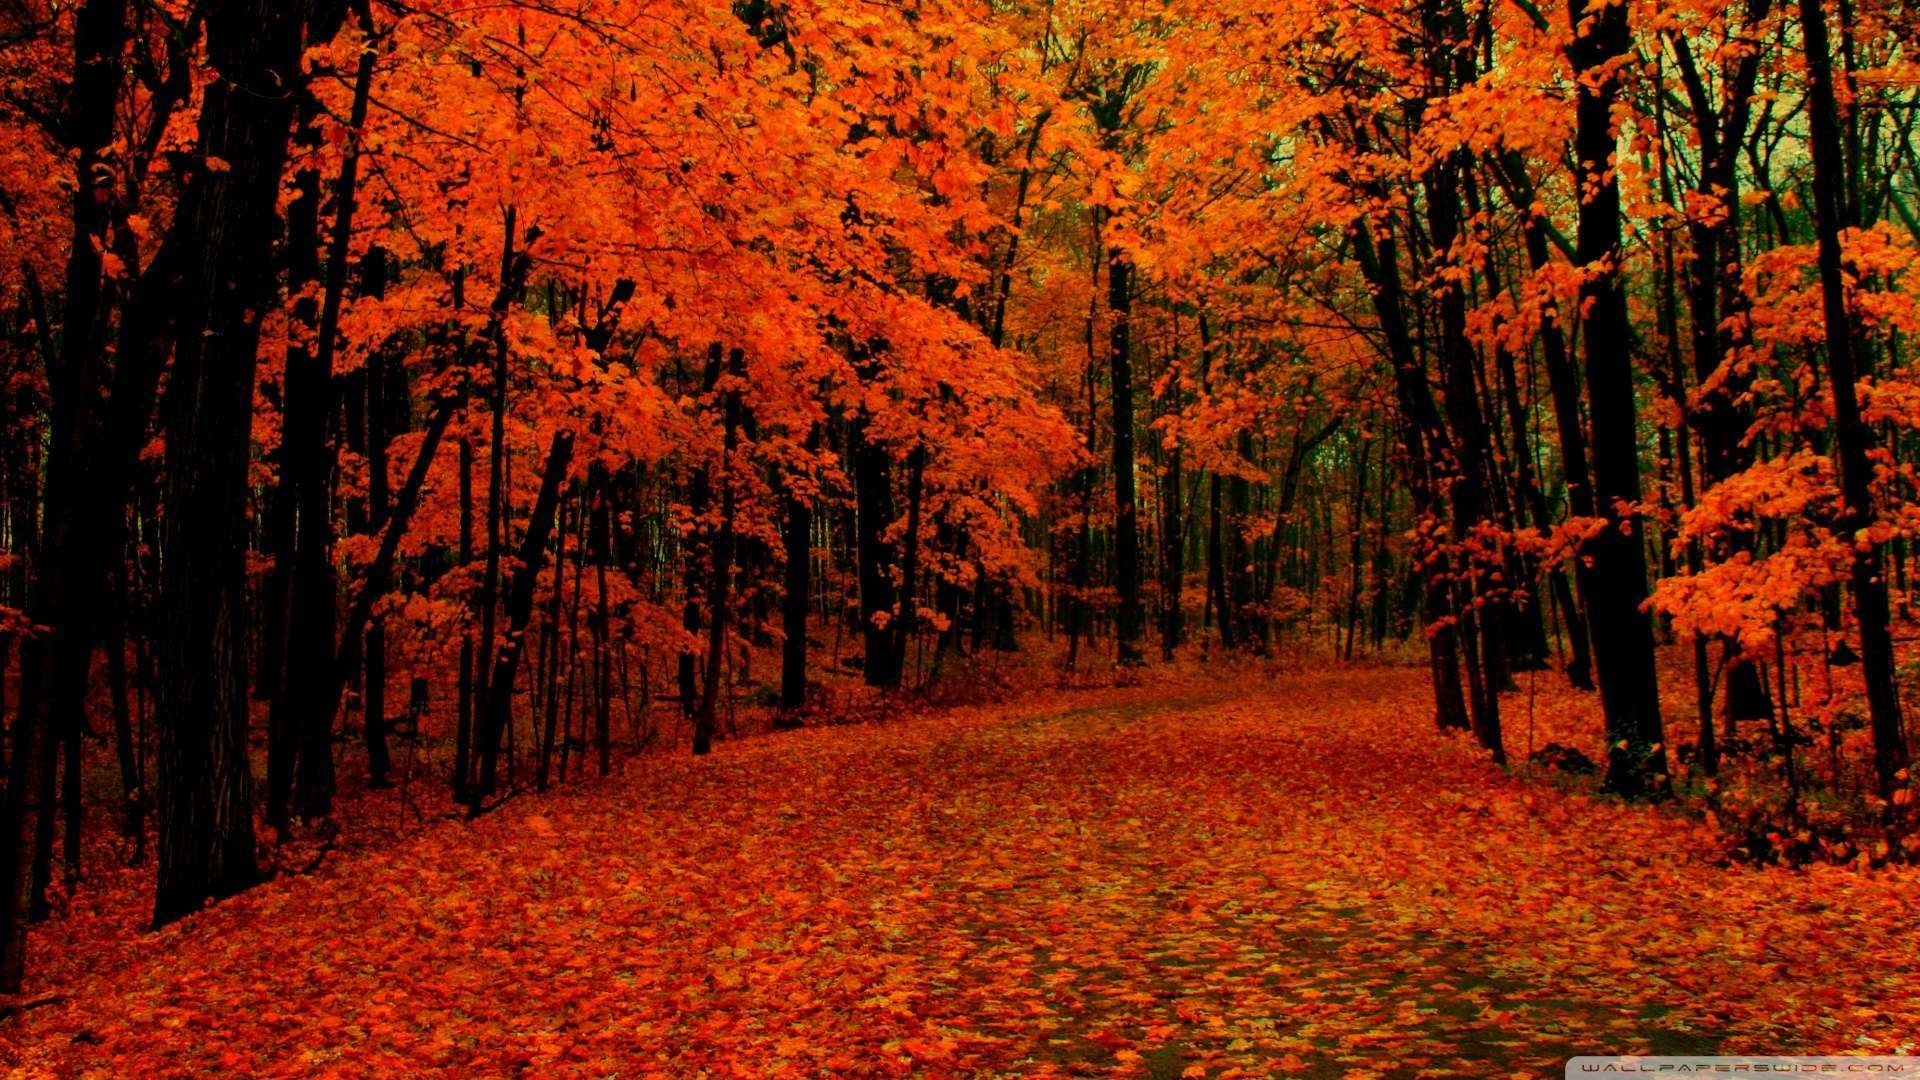 Wallpaper: Fall Path Wallpaper 1080p HD. Upload at February 2, 2014 by .